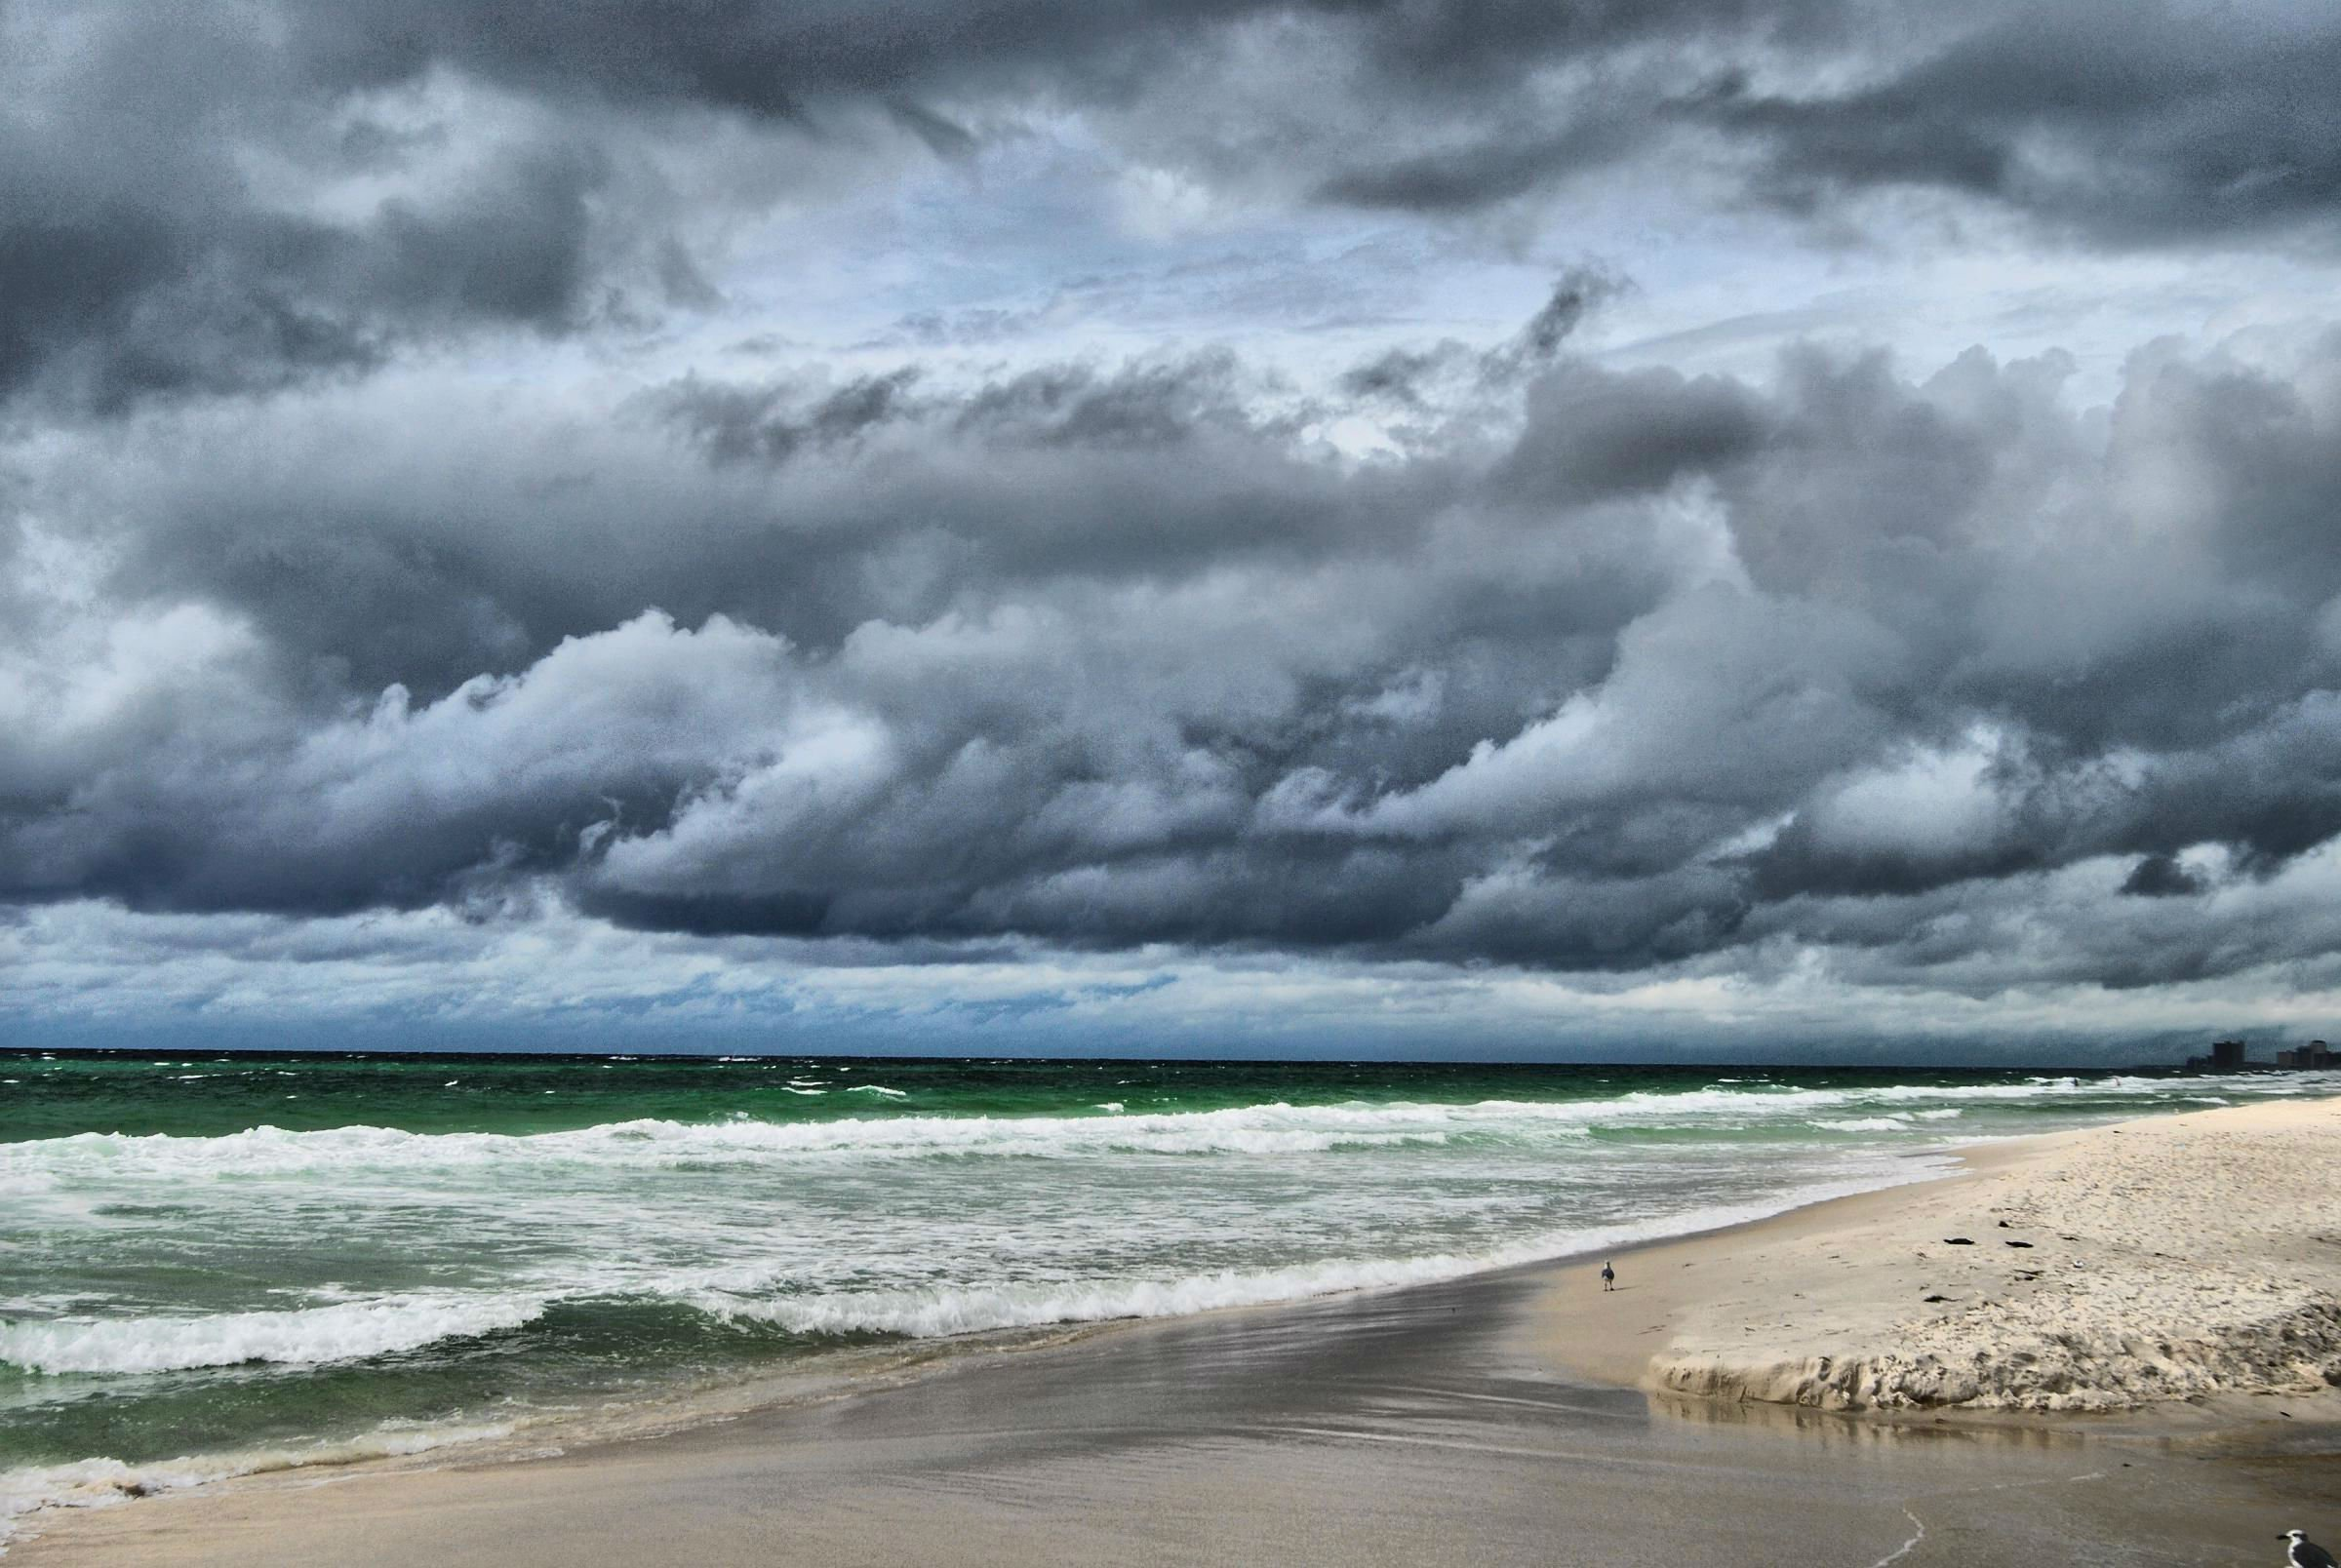 storm weather rain sky clouds nature sea ocean beach waves